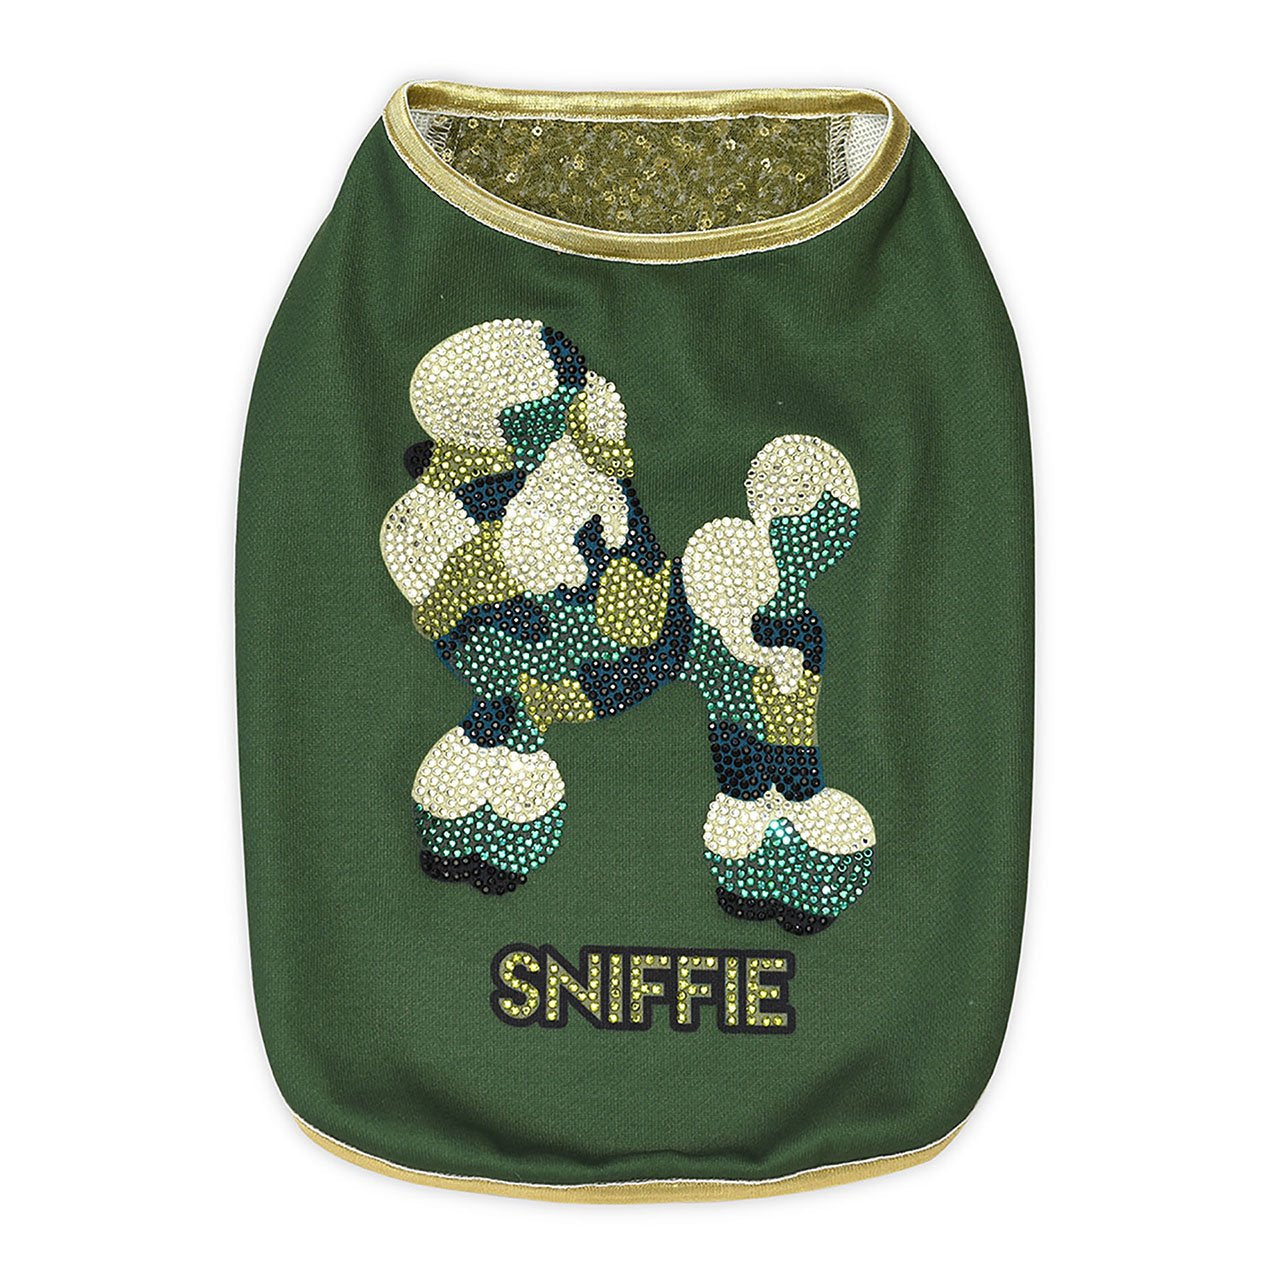 Sniffie Dog Fashion Dog Clothes Knitted Vest with Crystals and Sequins